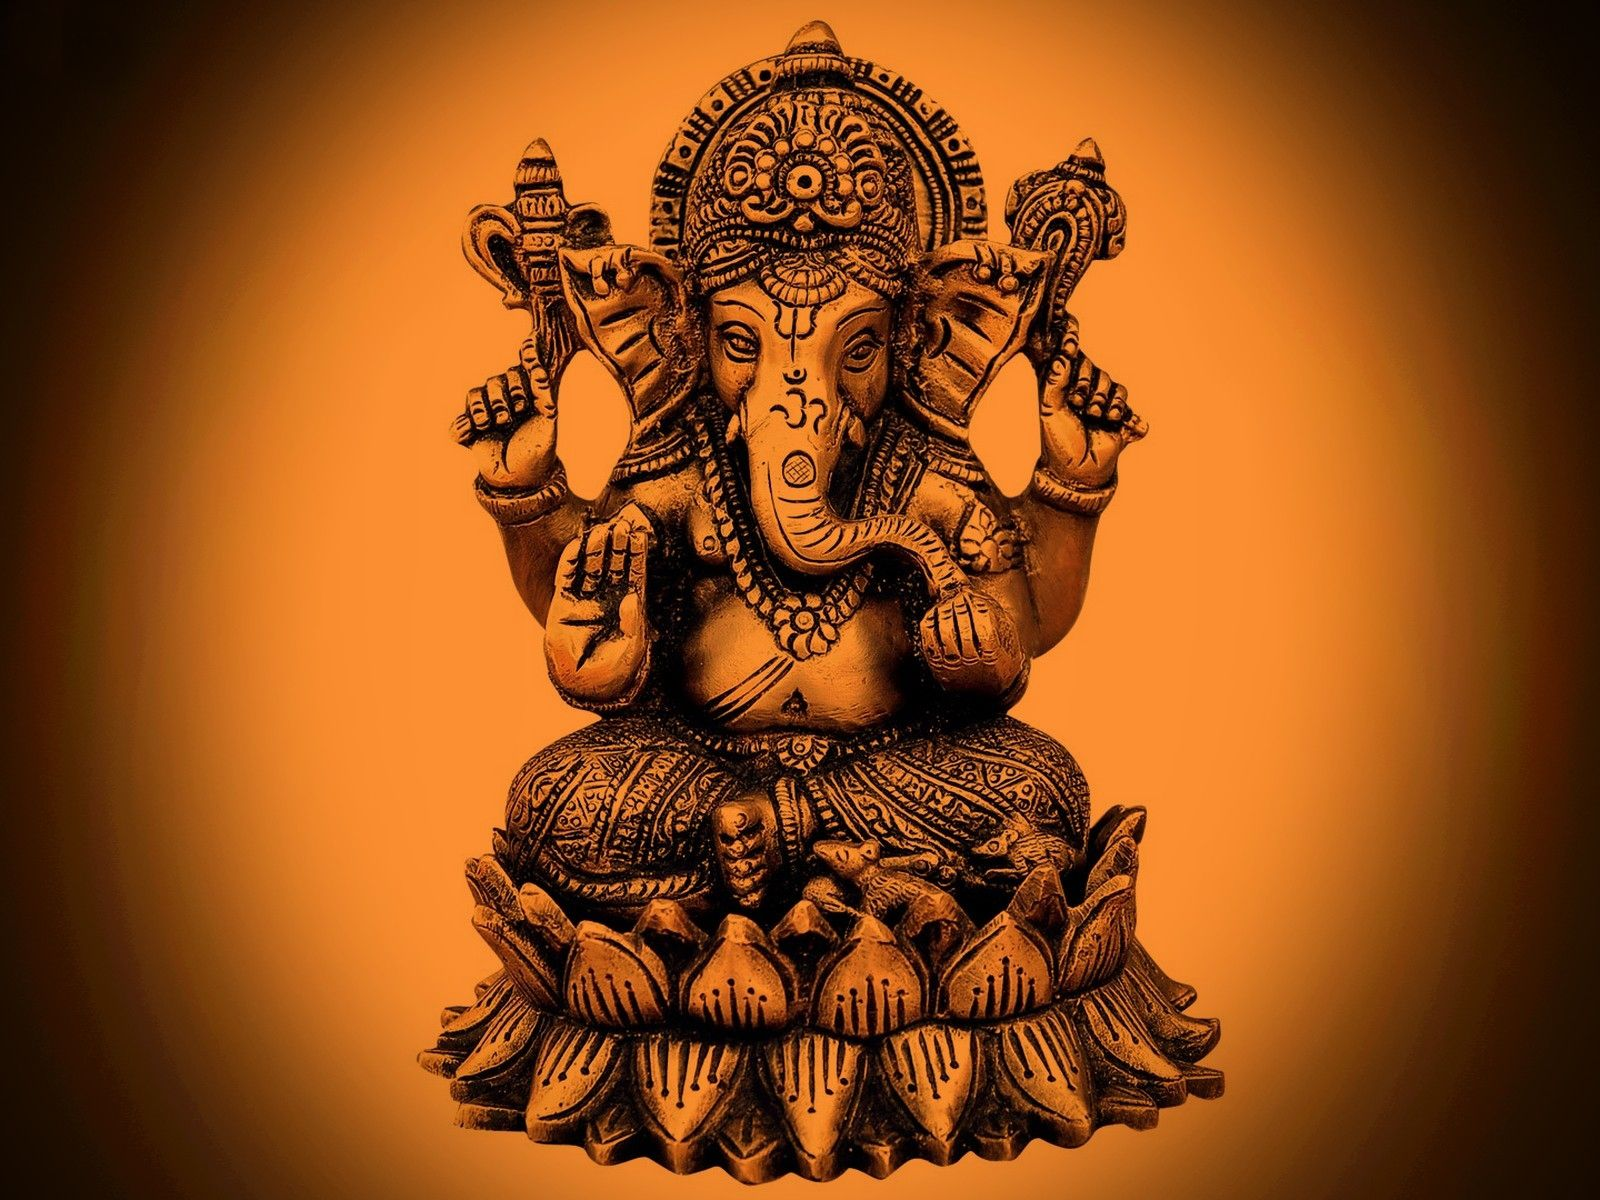 Hd wallpaper ganpati - Ganpati Hd Images Photos Picture Hd Wallpapers